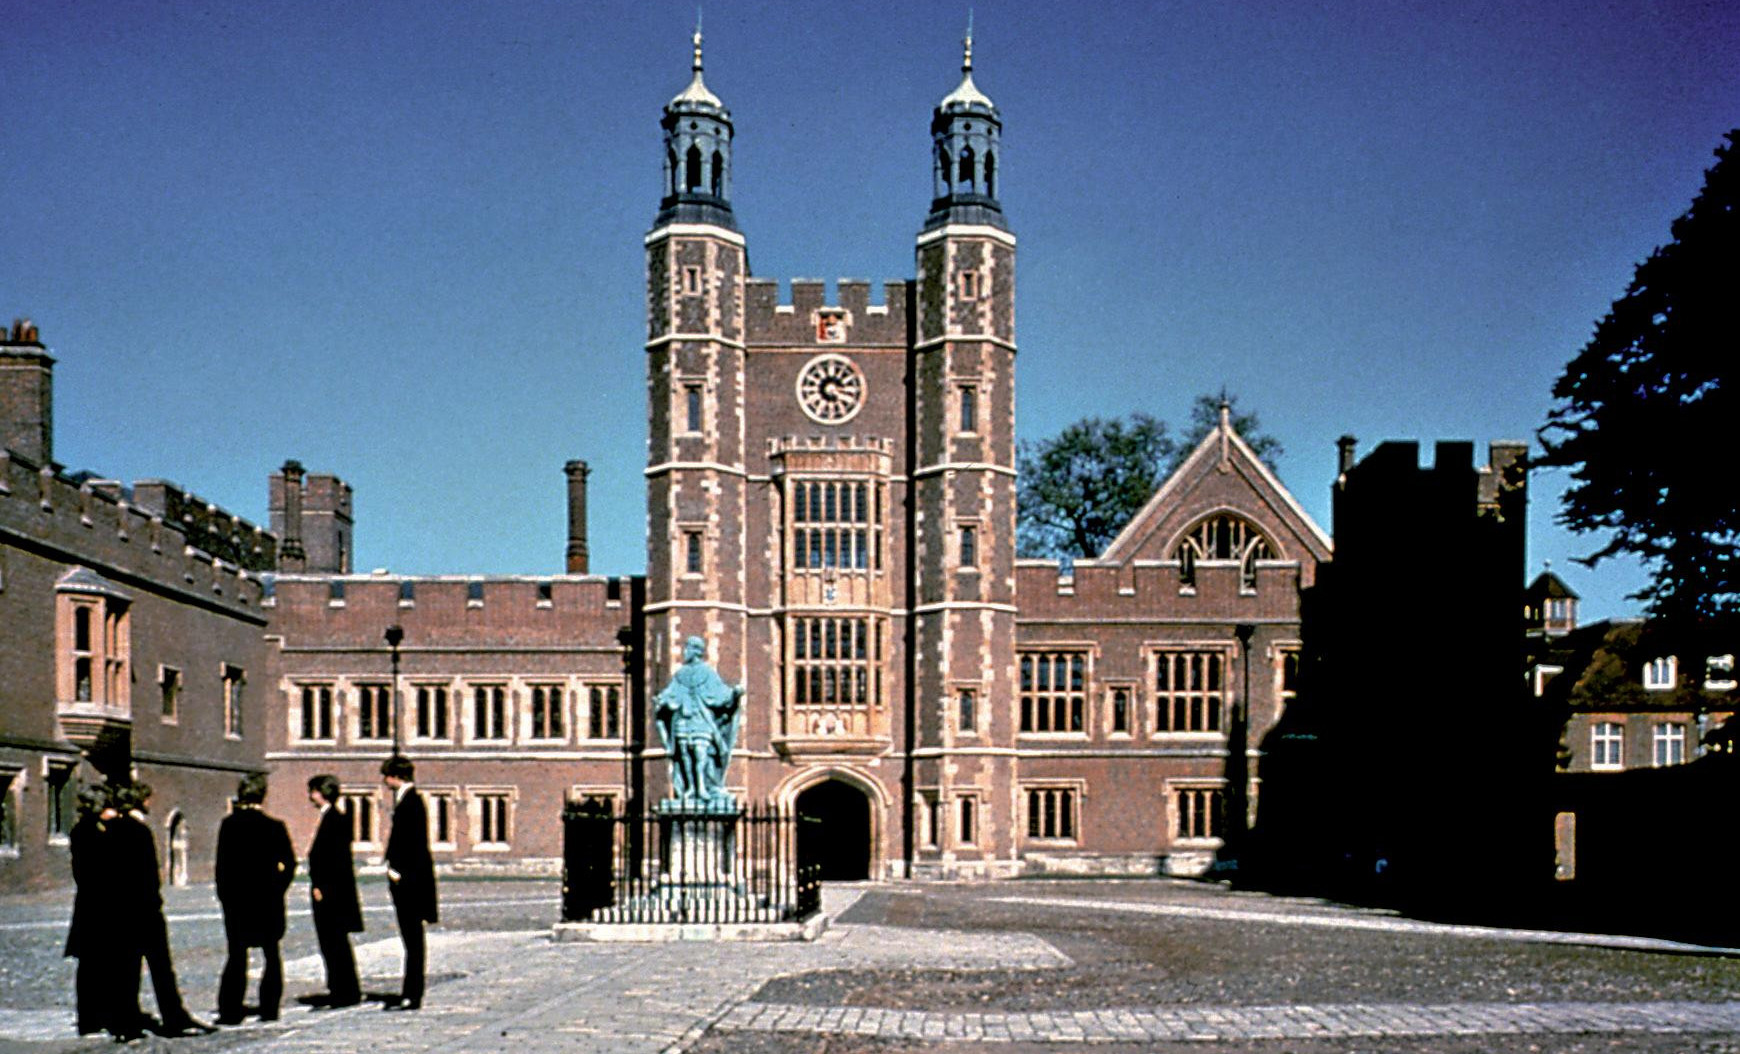 Tours round Eton College this summer - small groups welcome (From ...